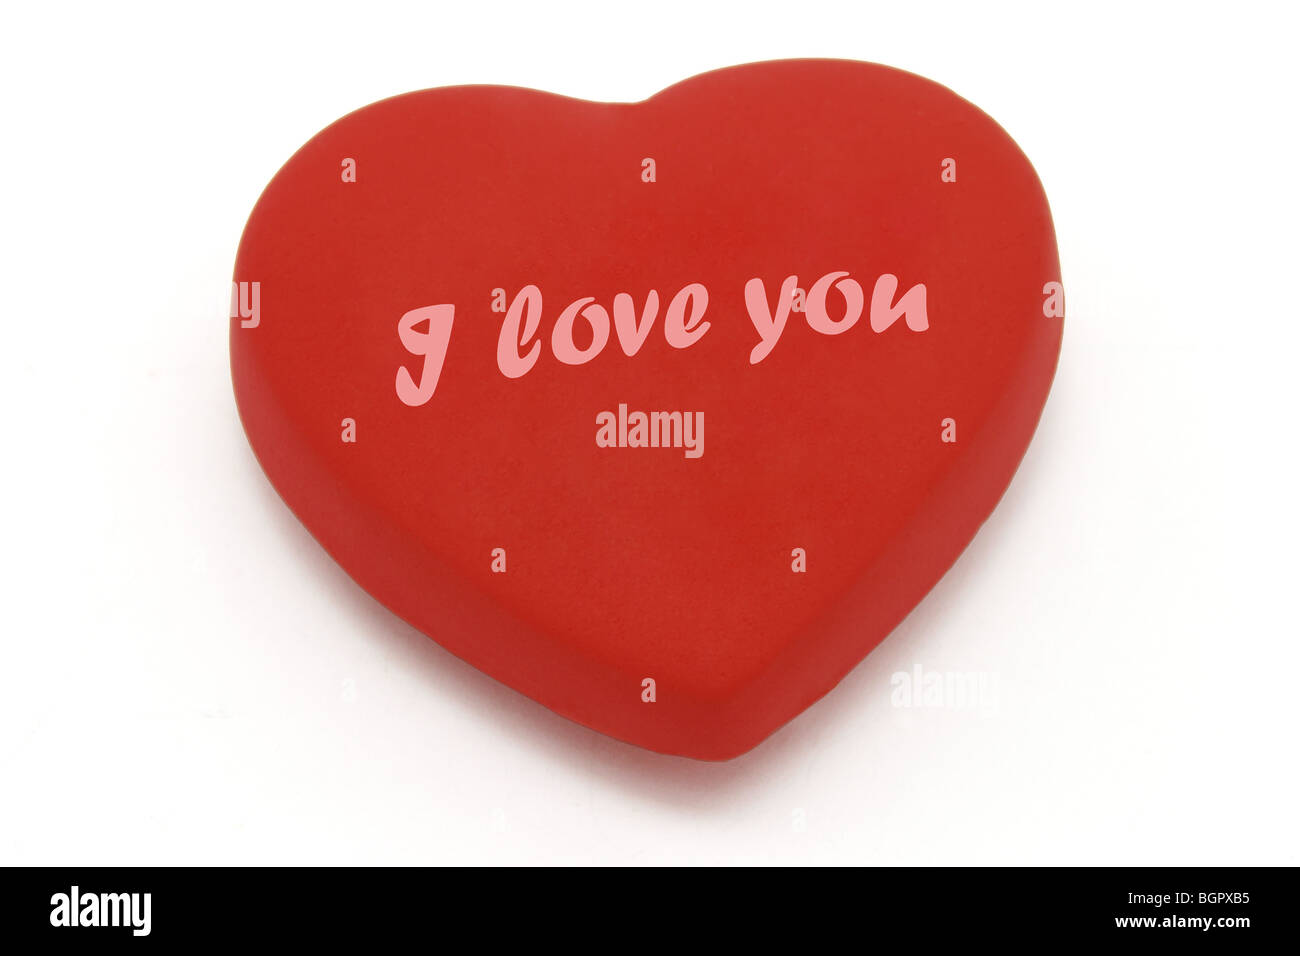 Heart Shaped Symbol With I Love You And Copy Space For More Texts